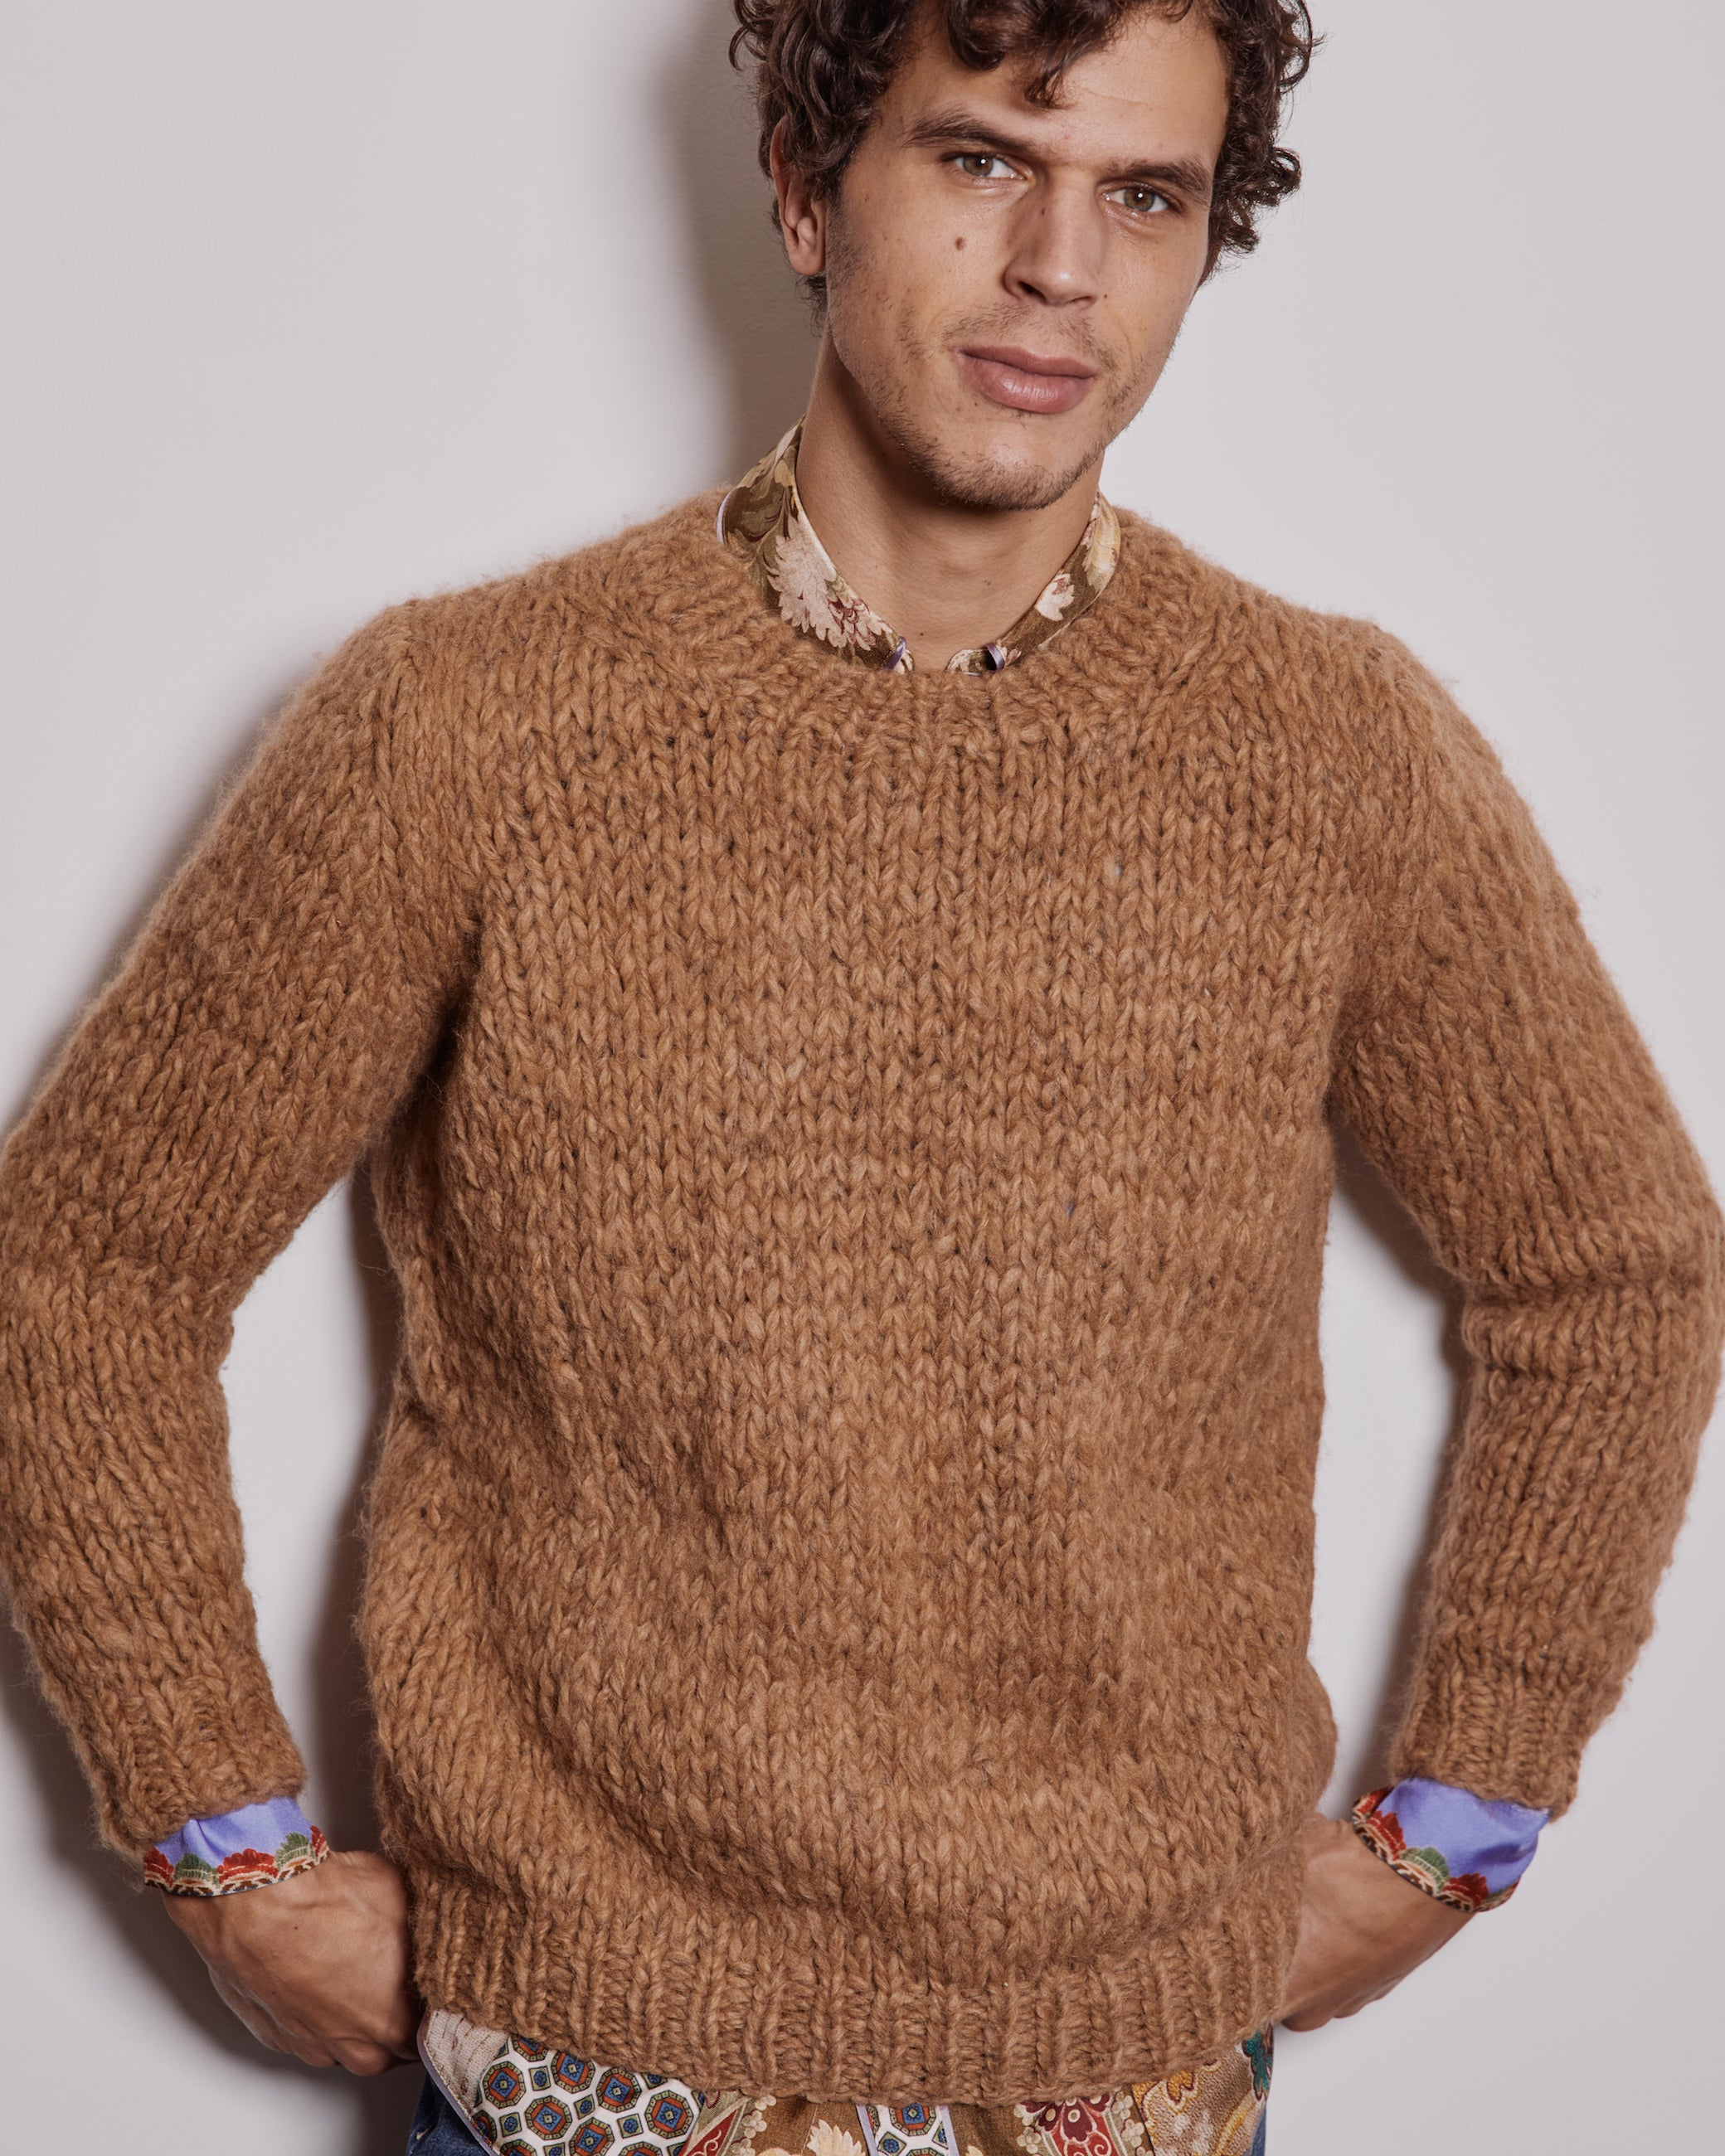 President's-Crew-Neck-Knitted-Alpaca-Sweater